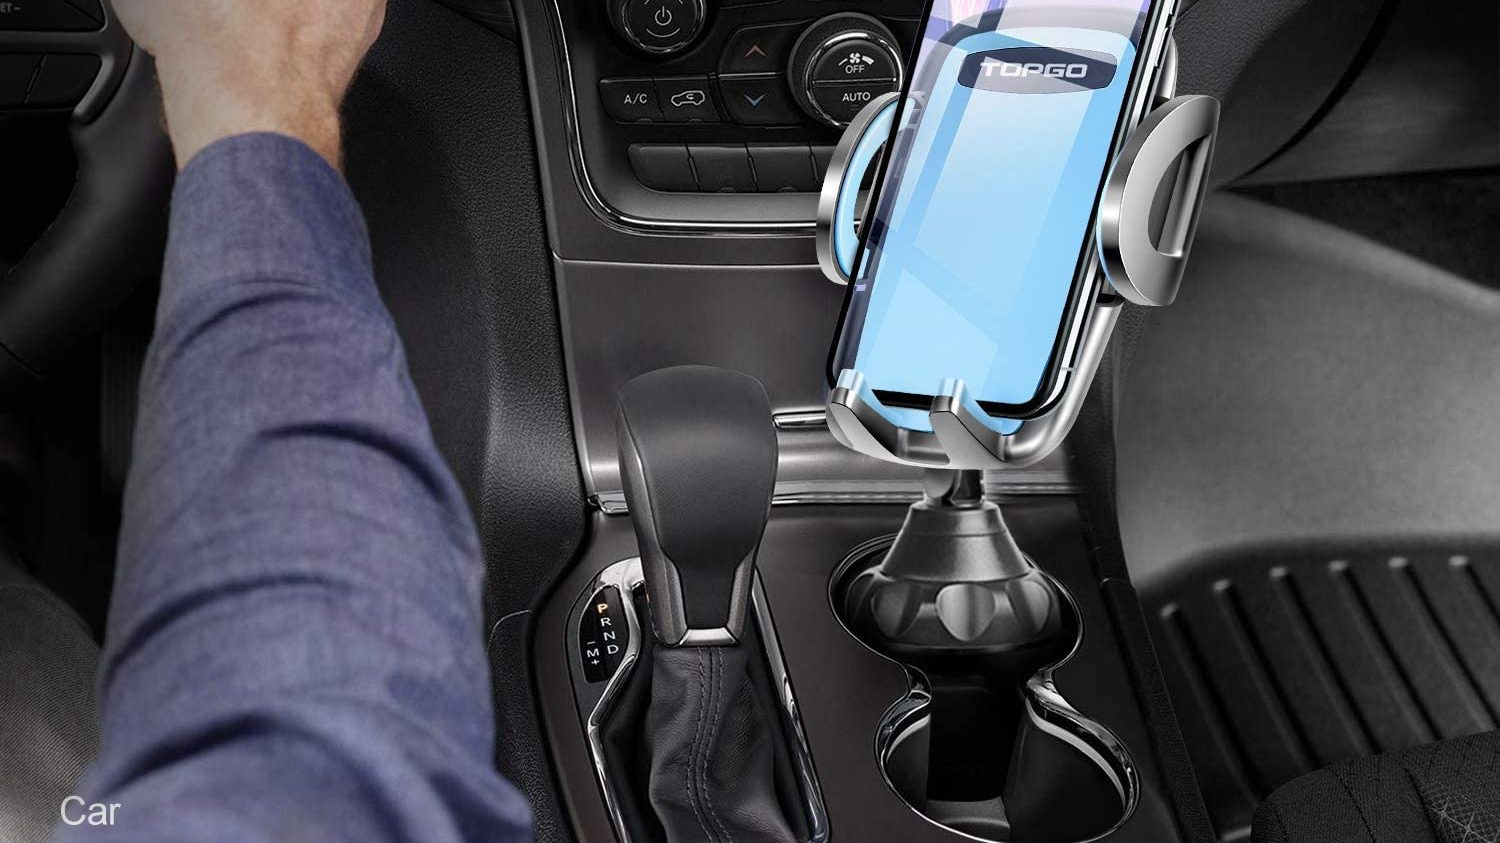 Best Cup Phone Holder